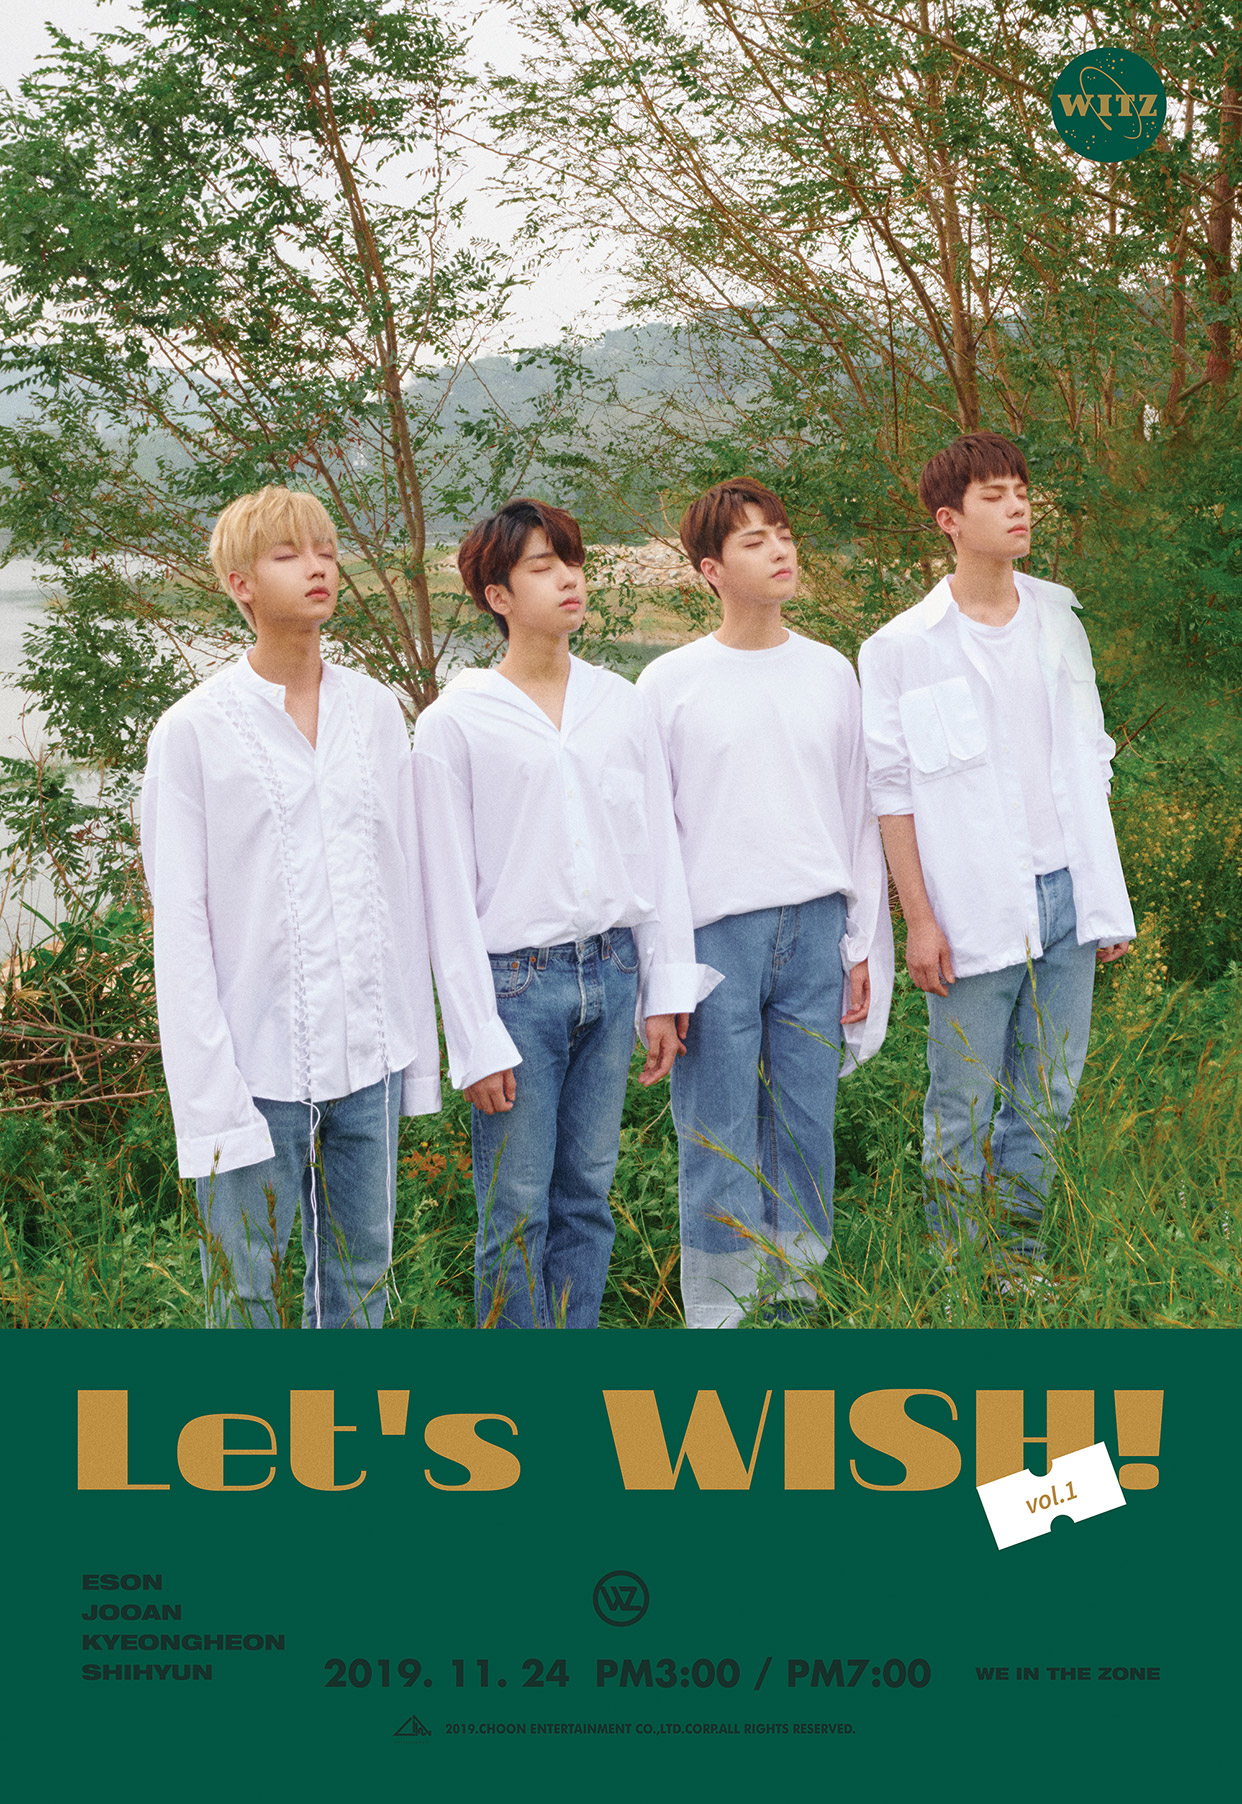 Let's WISH! vol.1